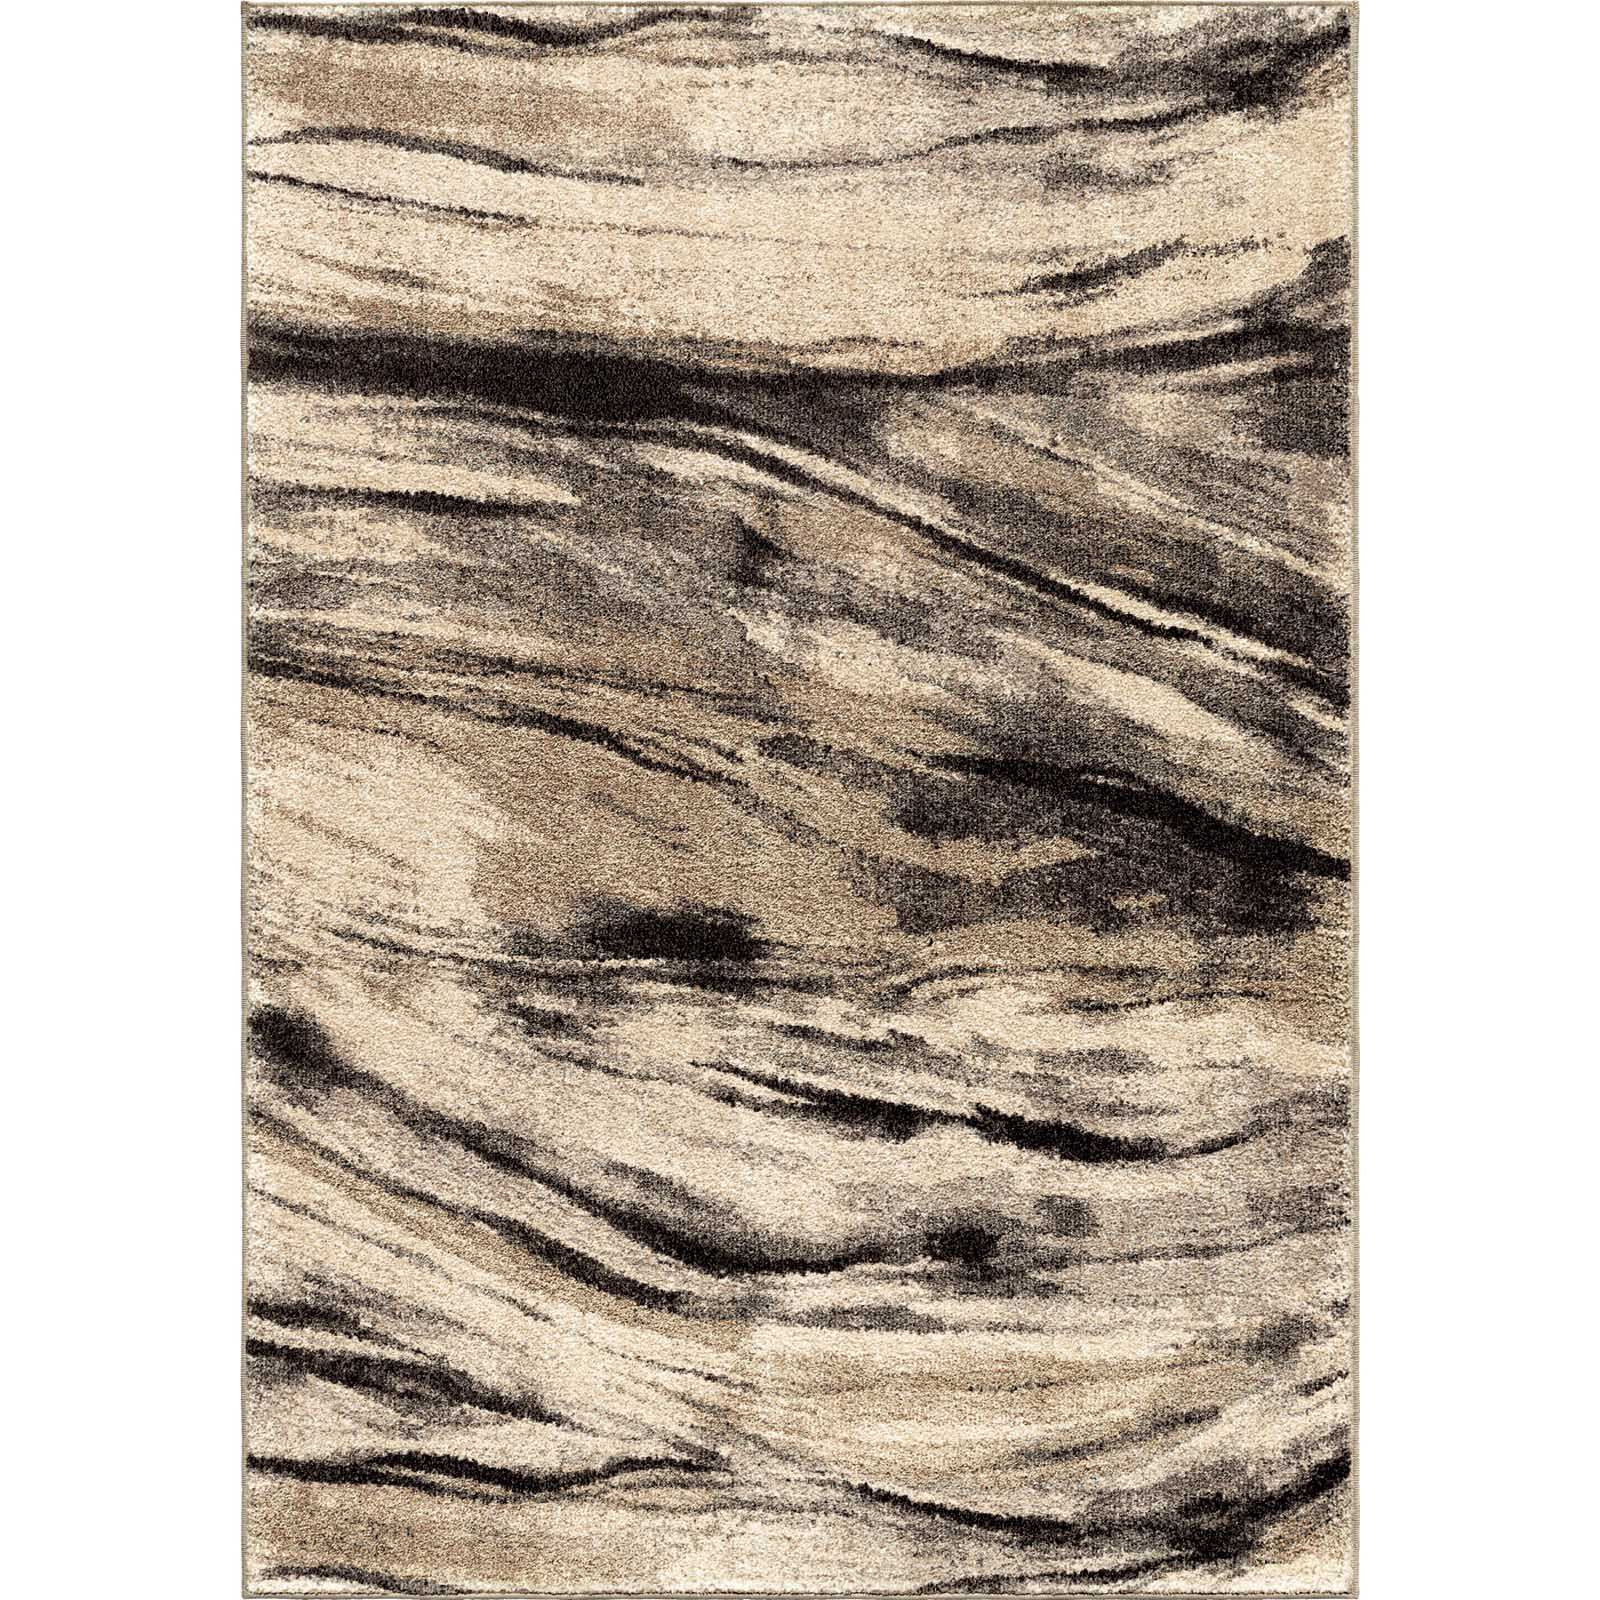 B371 Sycamore Lambswool Rug  60x79 In.